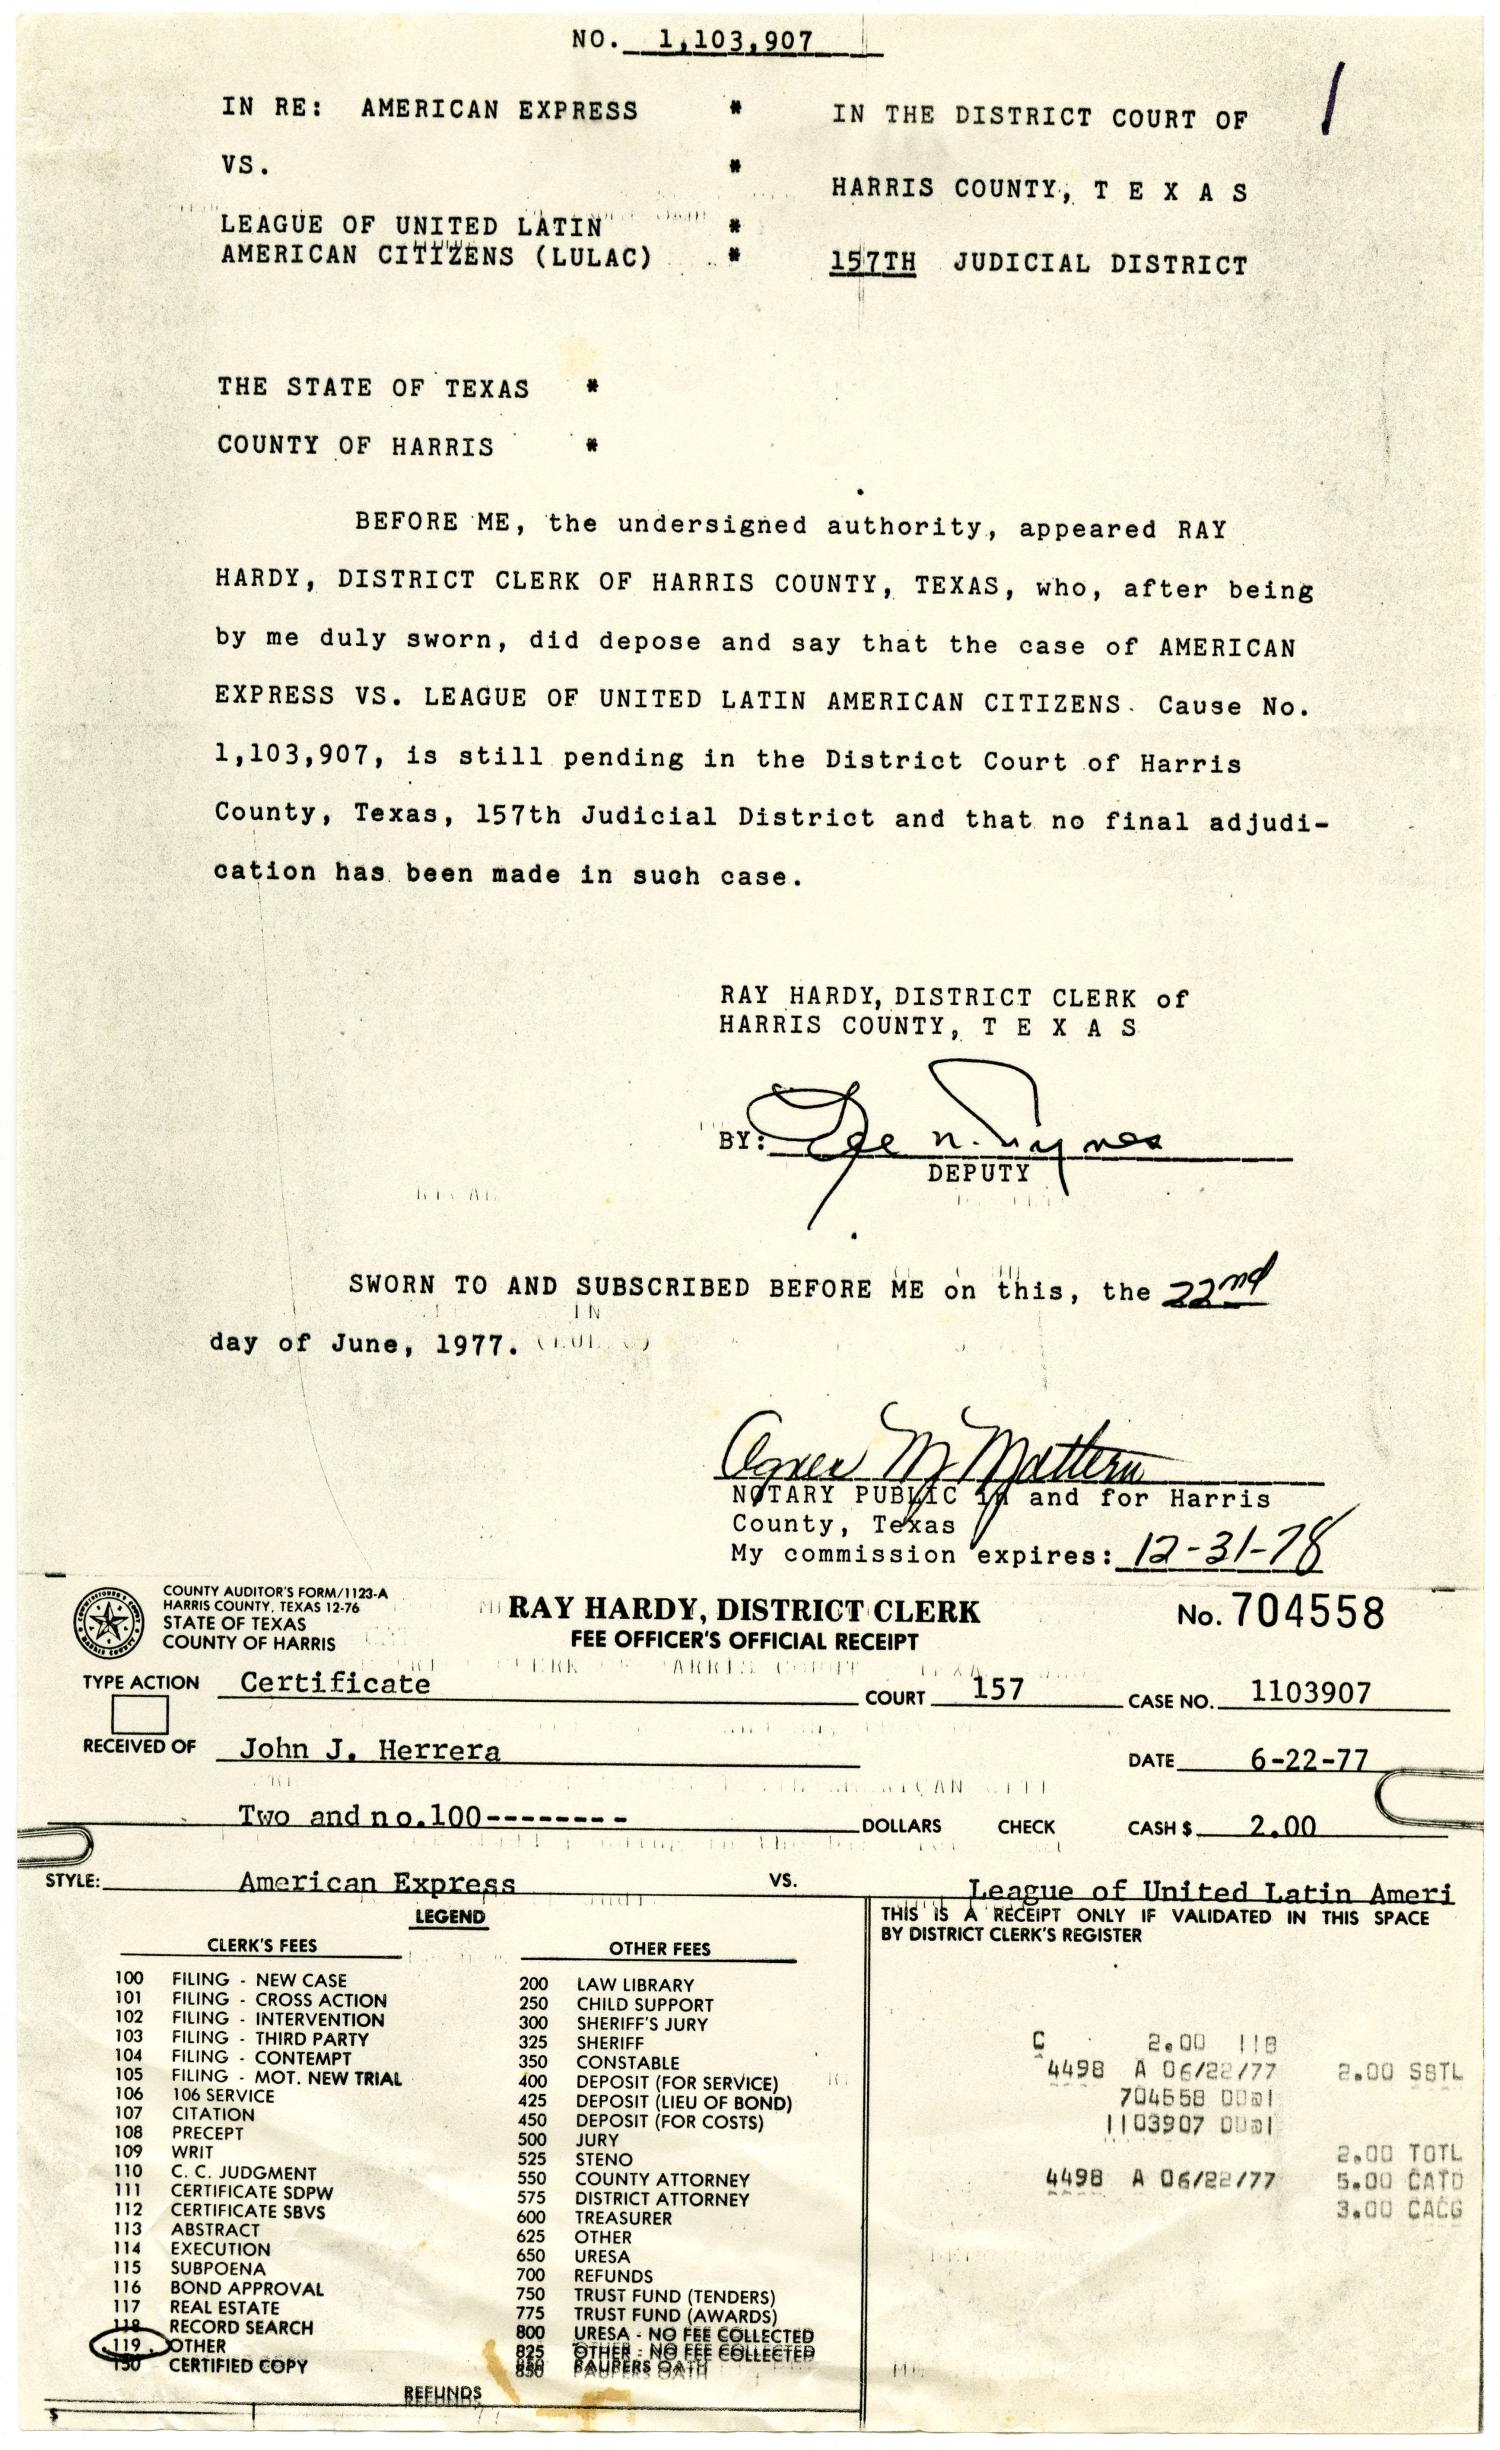 [Affidavit and Certificate, American Express vs. LULAC - 1977-06-22]                                                                                                      [Sequence #]: 1 of 2